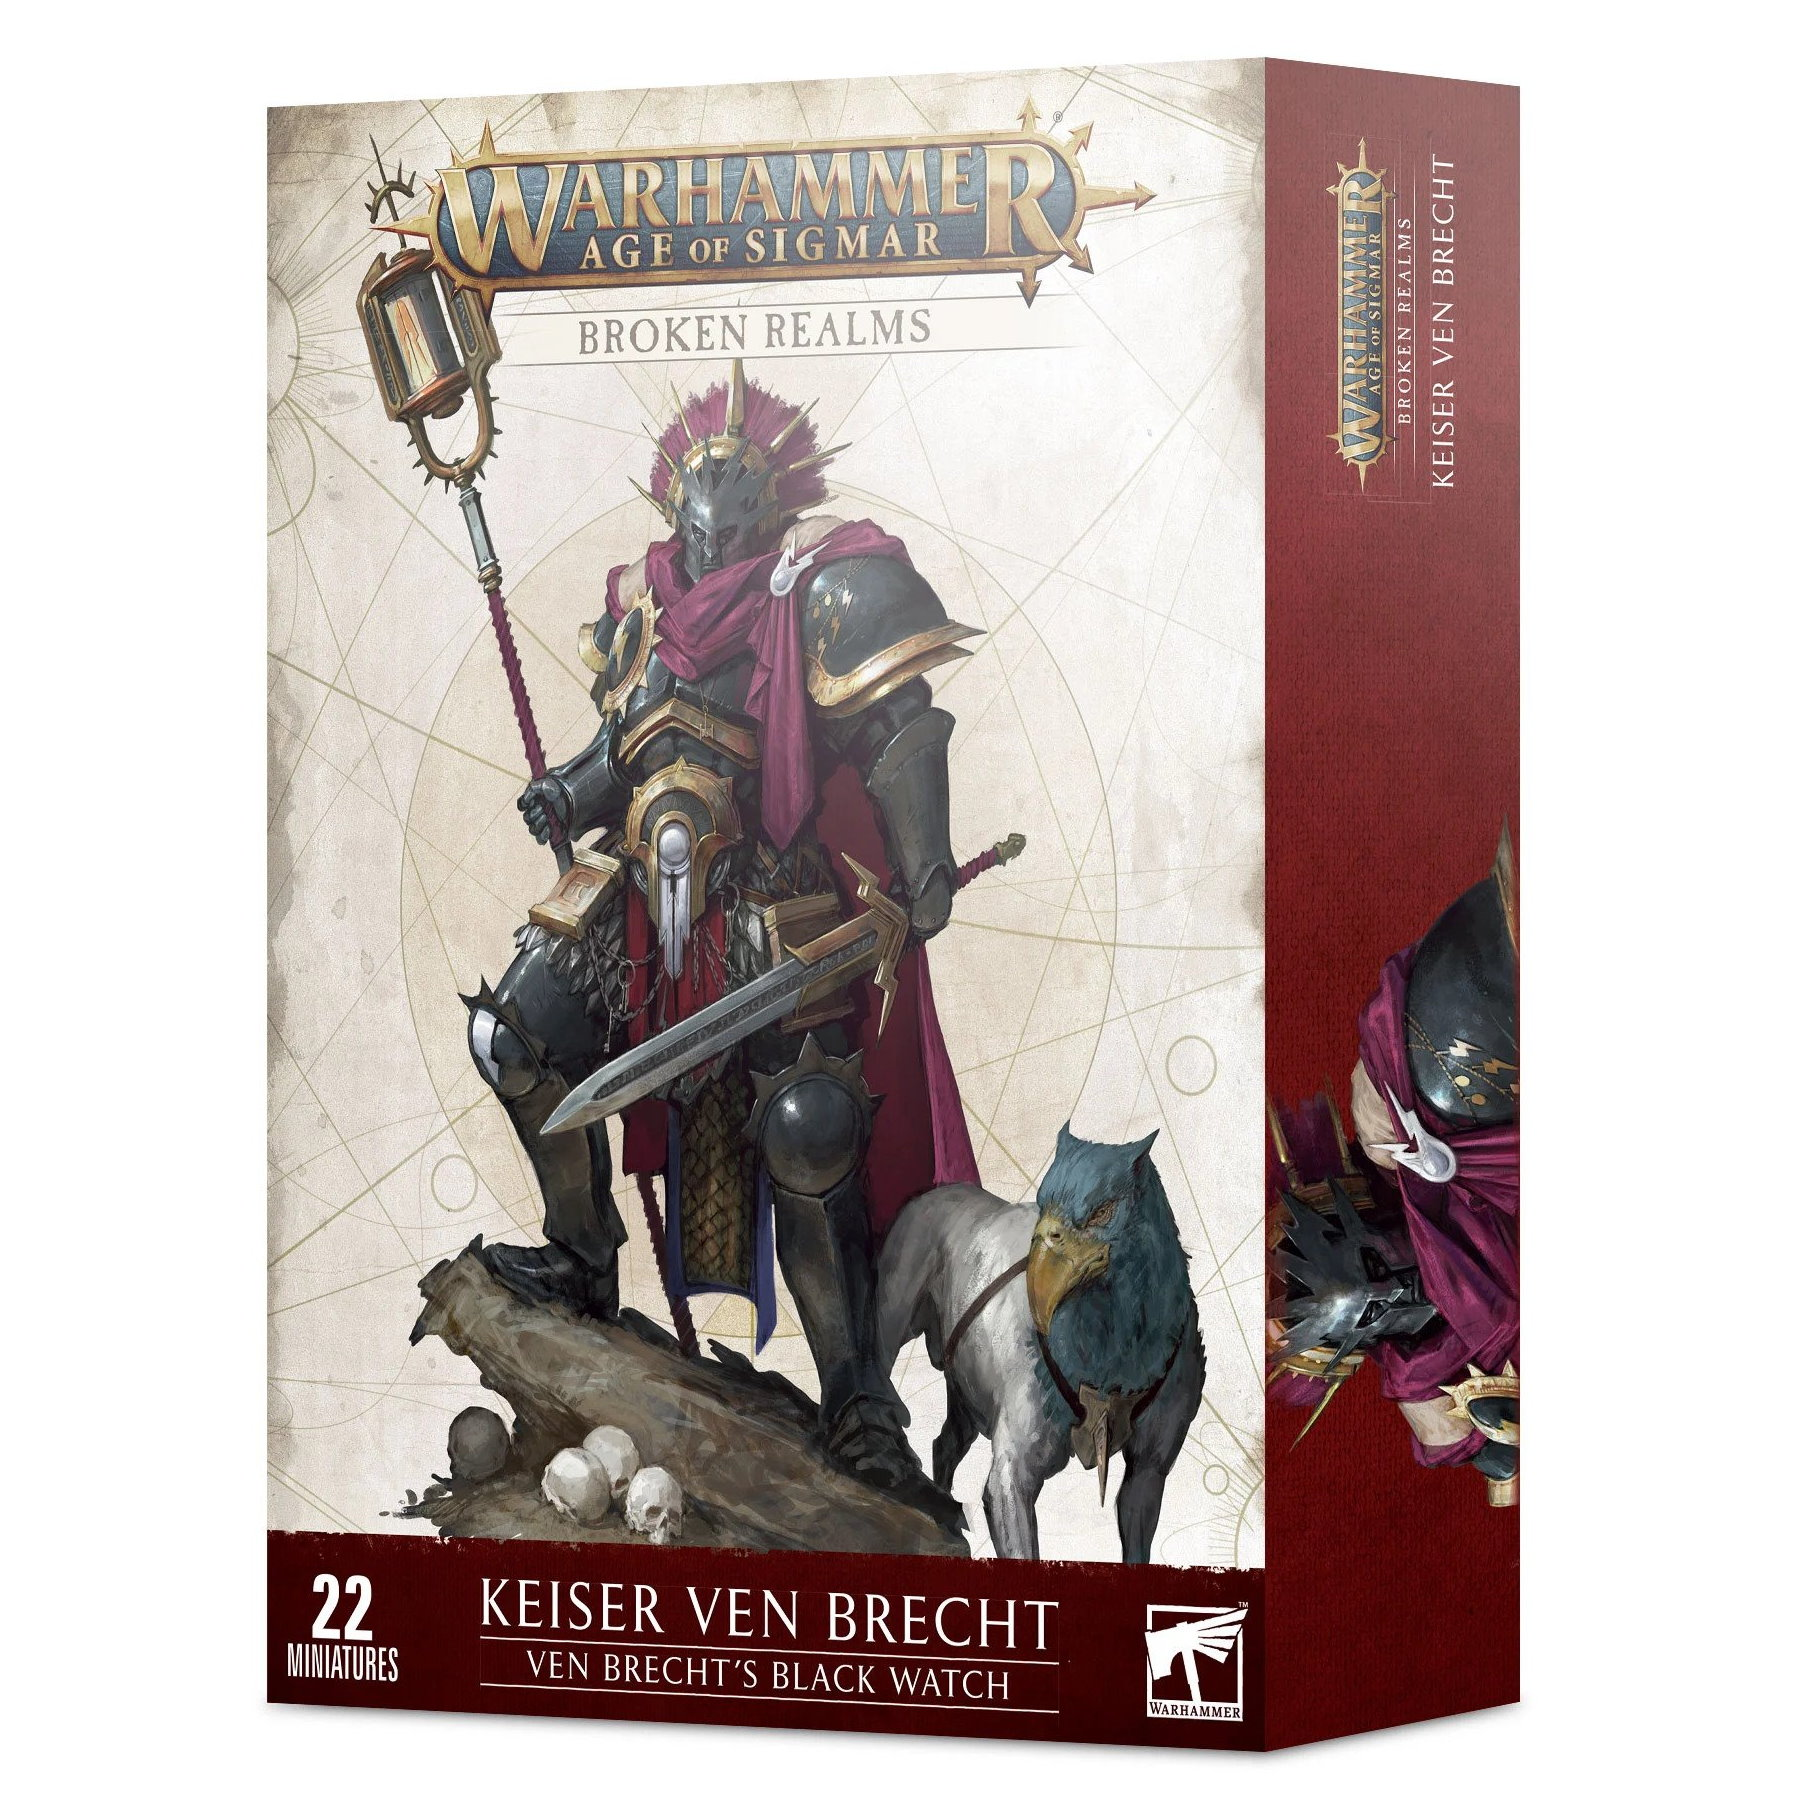 Warhammer Age of Sigmar: Stormcast Eternals: Broken Realms - Ven Brechts Black Watch